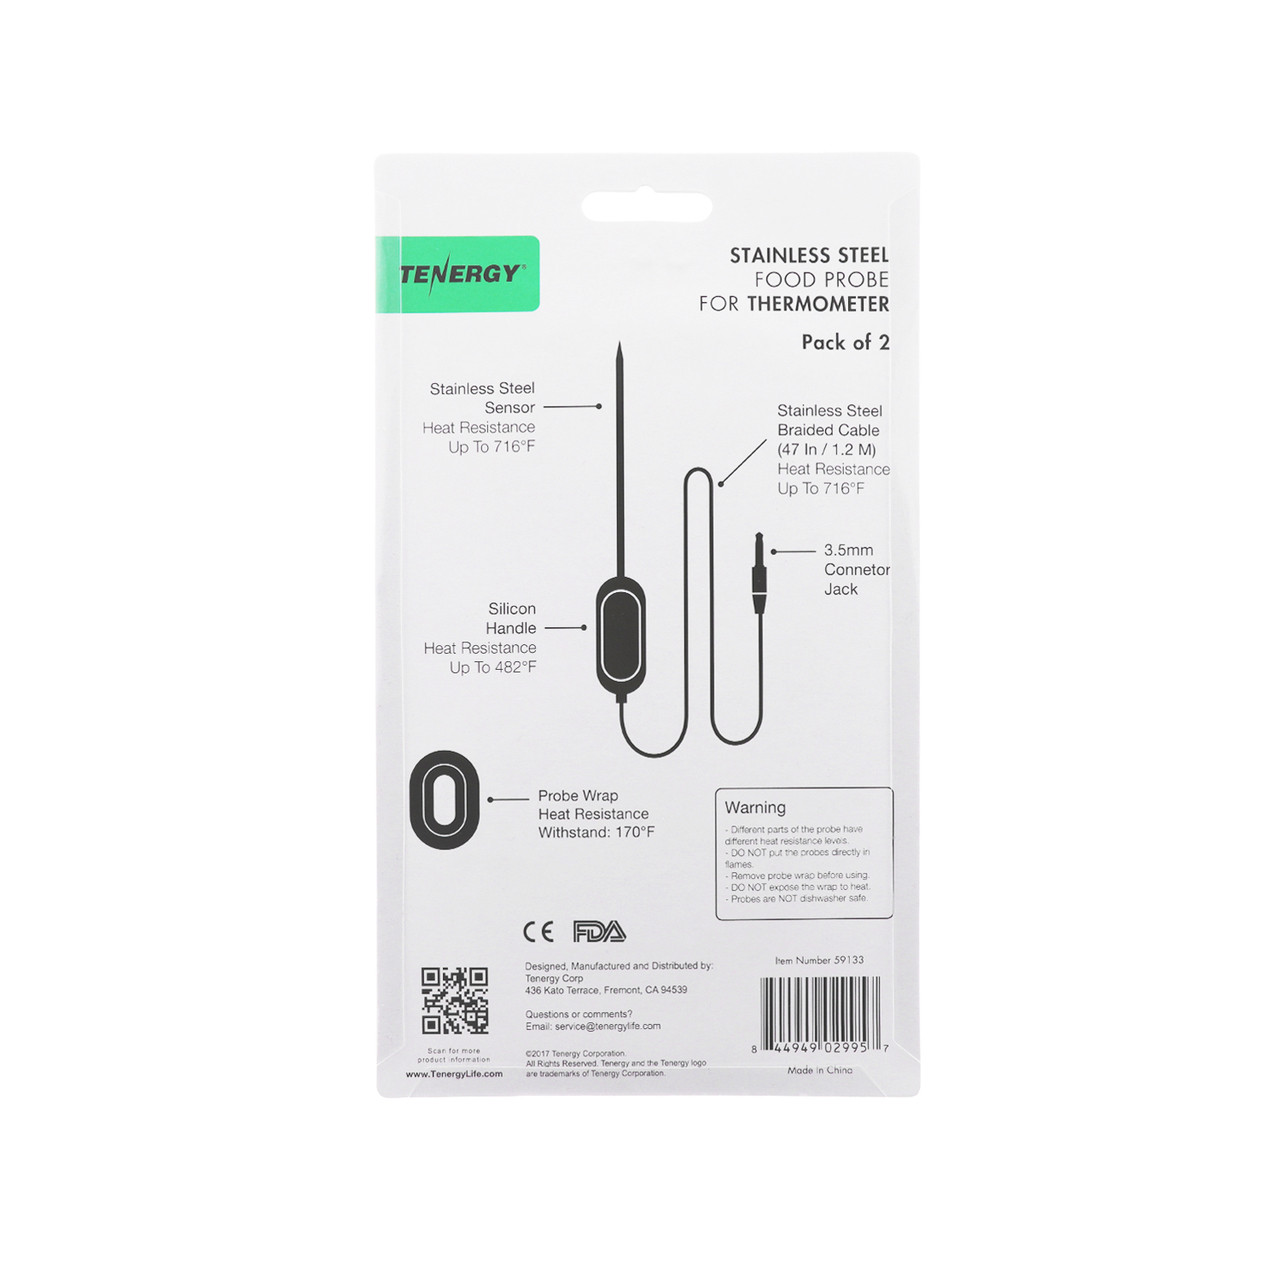 Stainless Steel Probes for Solis Smart Thermometer